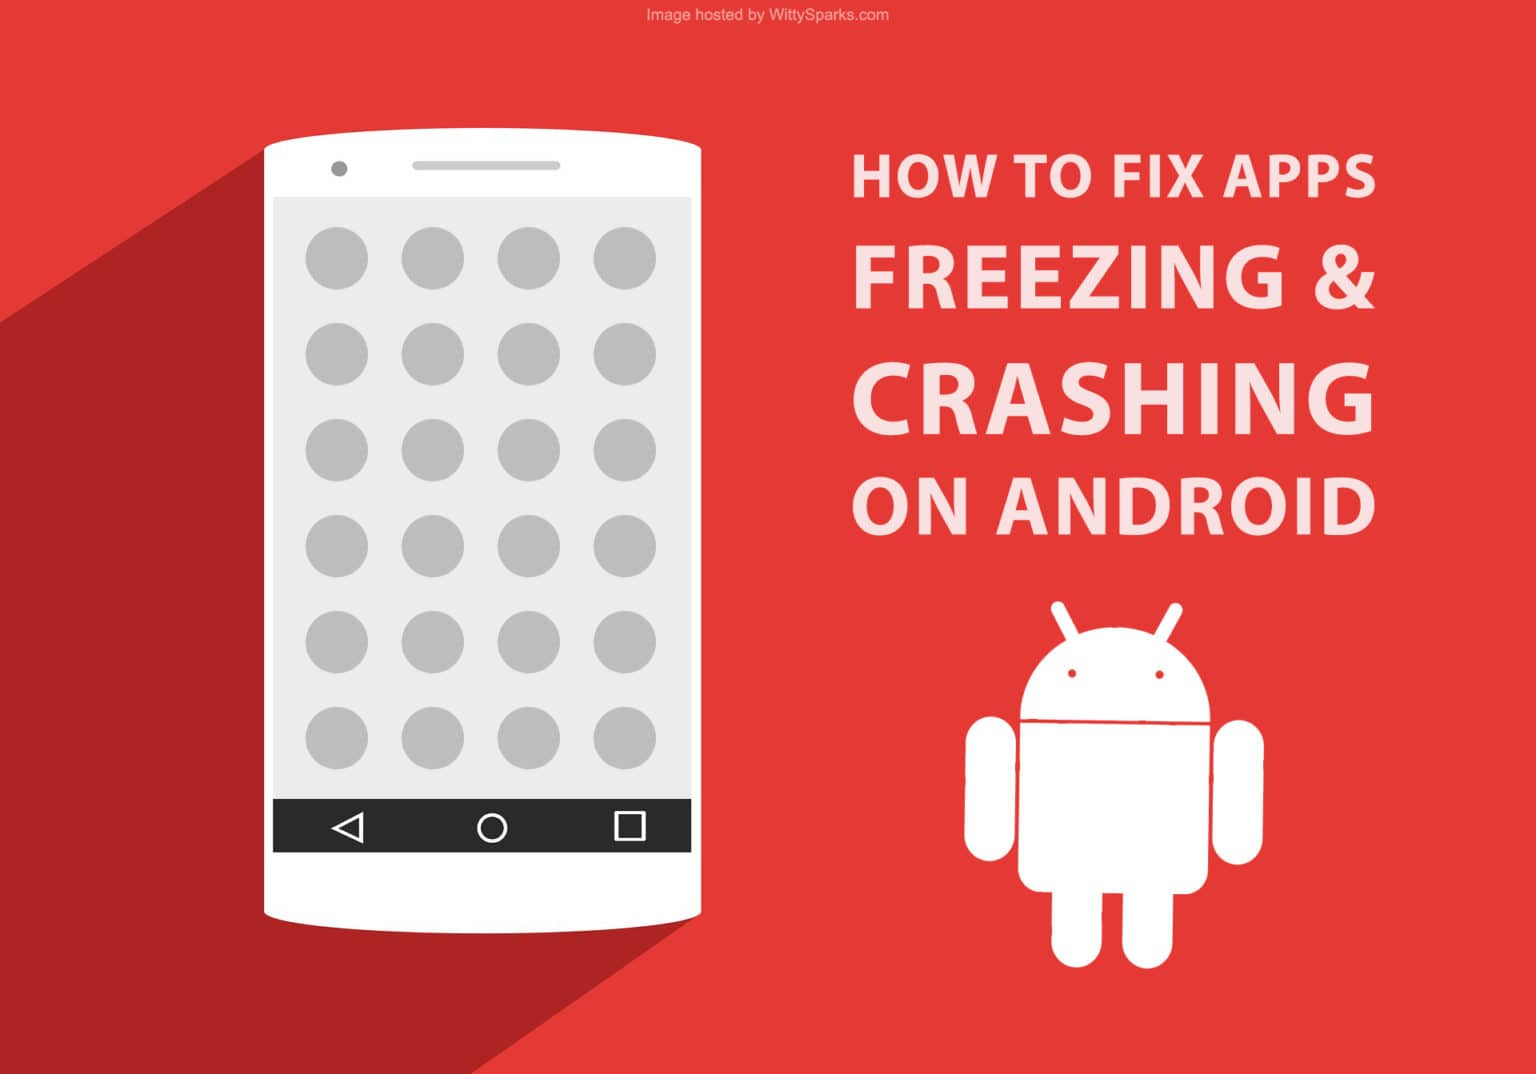 Fix Apps Freezing and Crashing Android